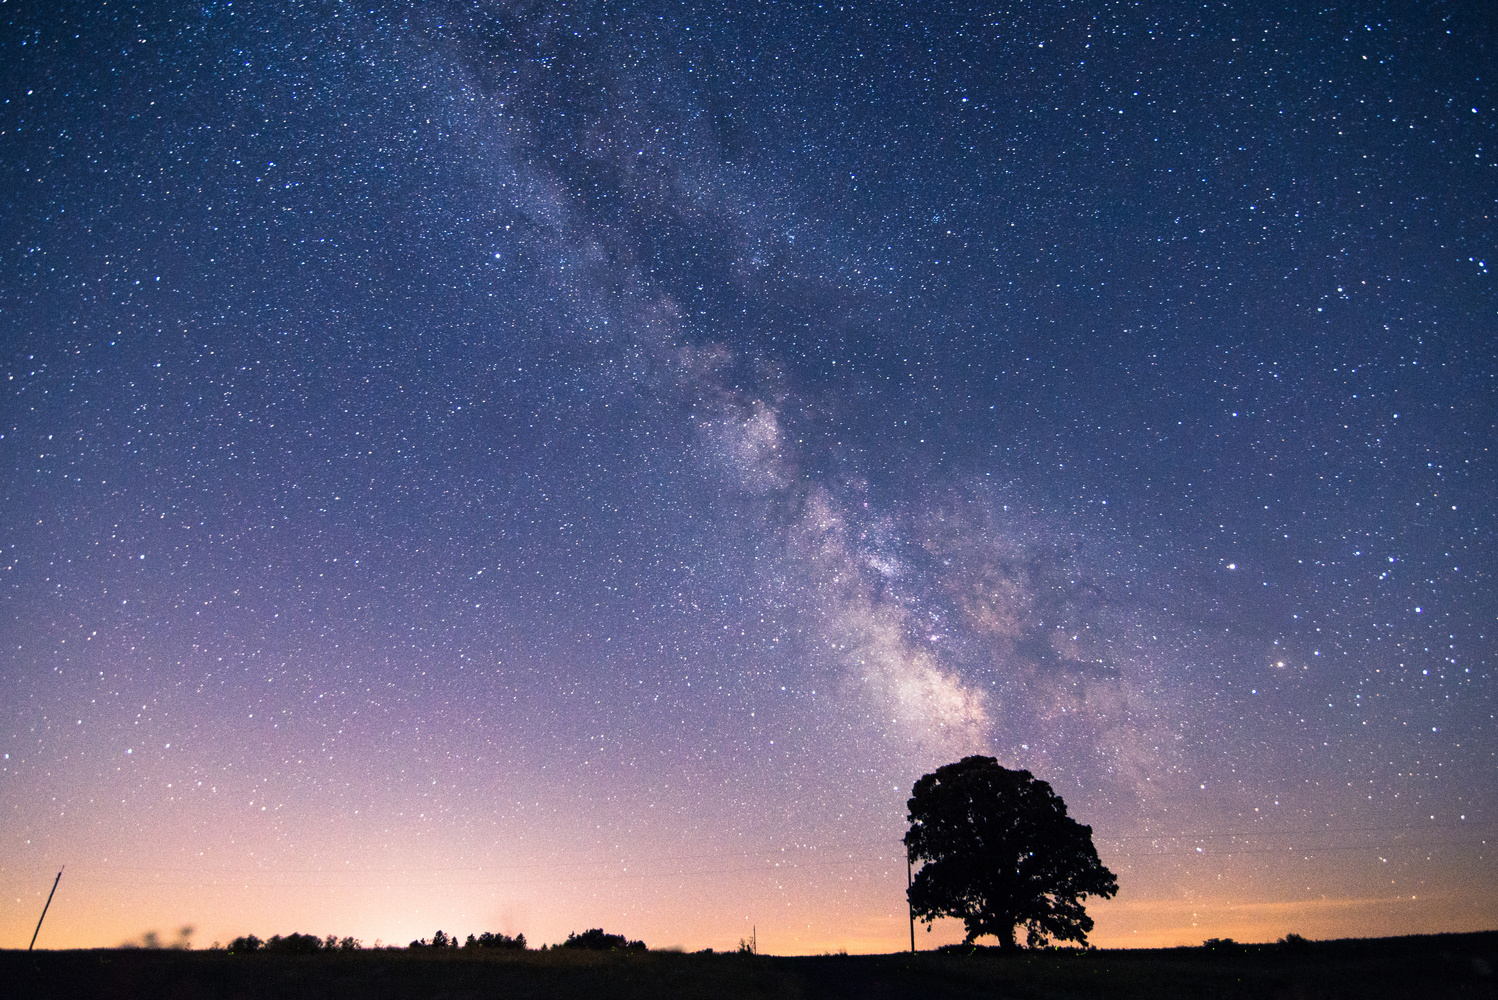 The Milky Way by jason stuempges